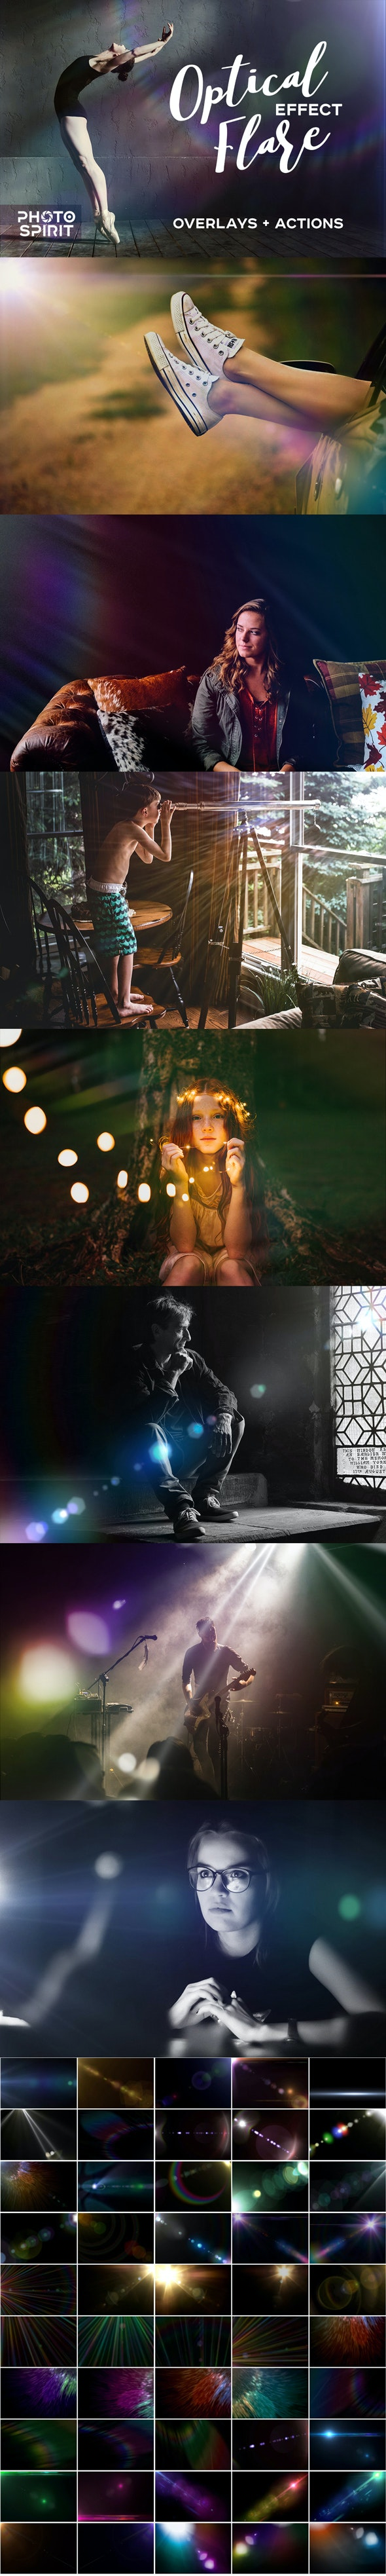 Optical Flare Overlay Effects - Photo Effects Actions